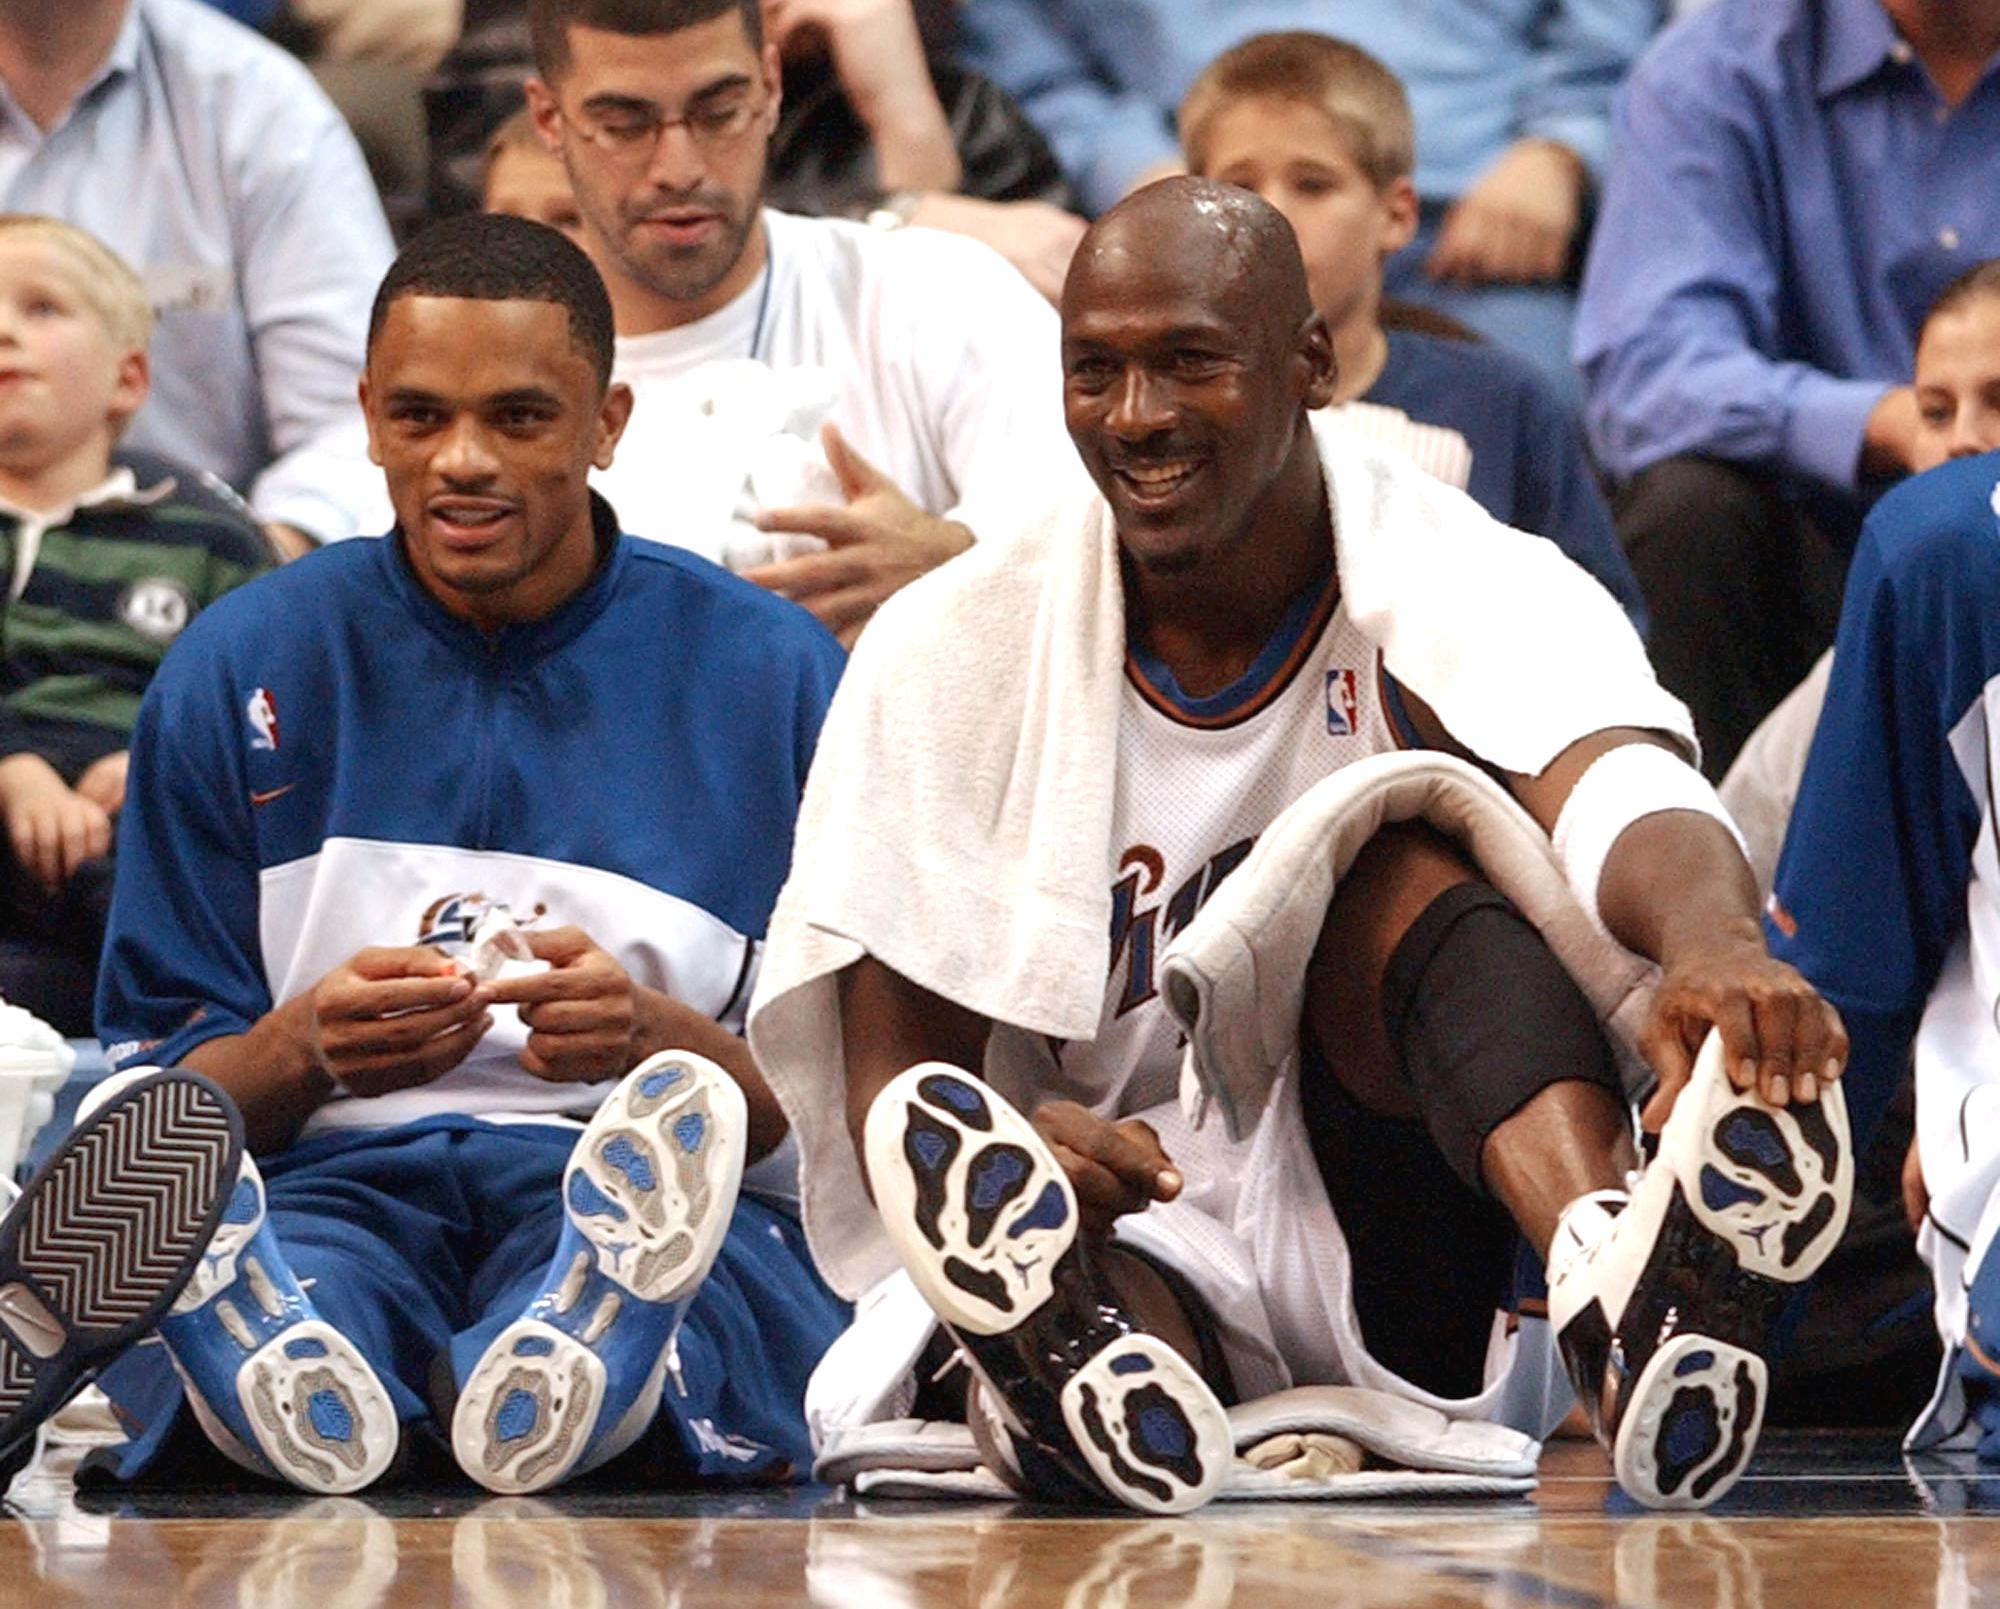 Wizards guard Michael Jordan (R) talks with teammate Juan Dixon